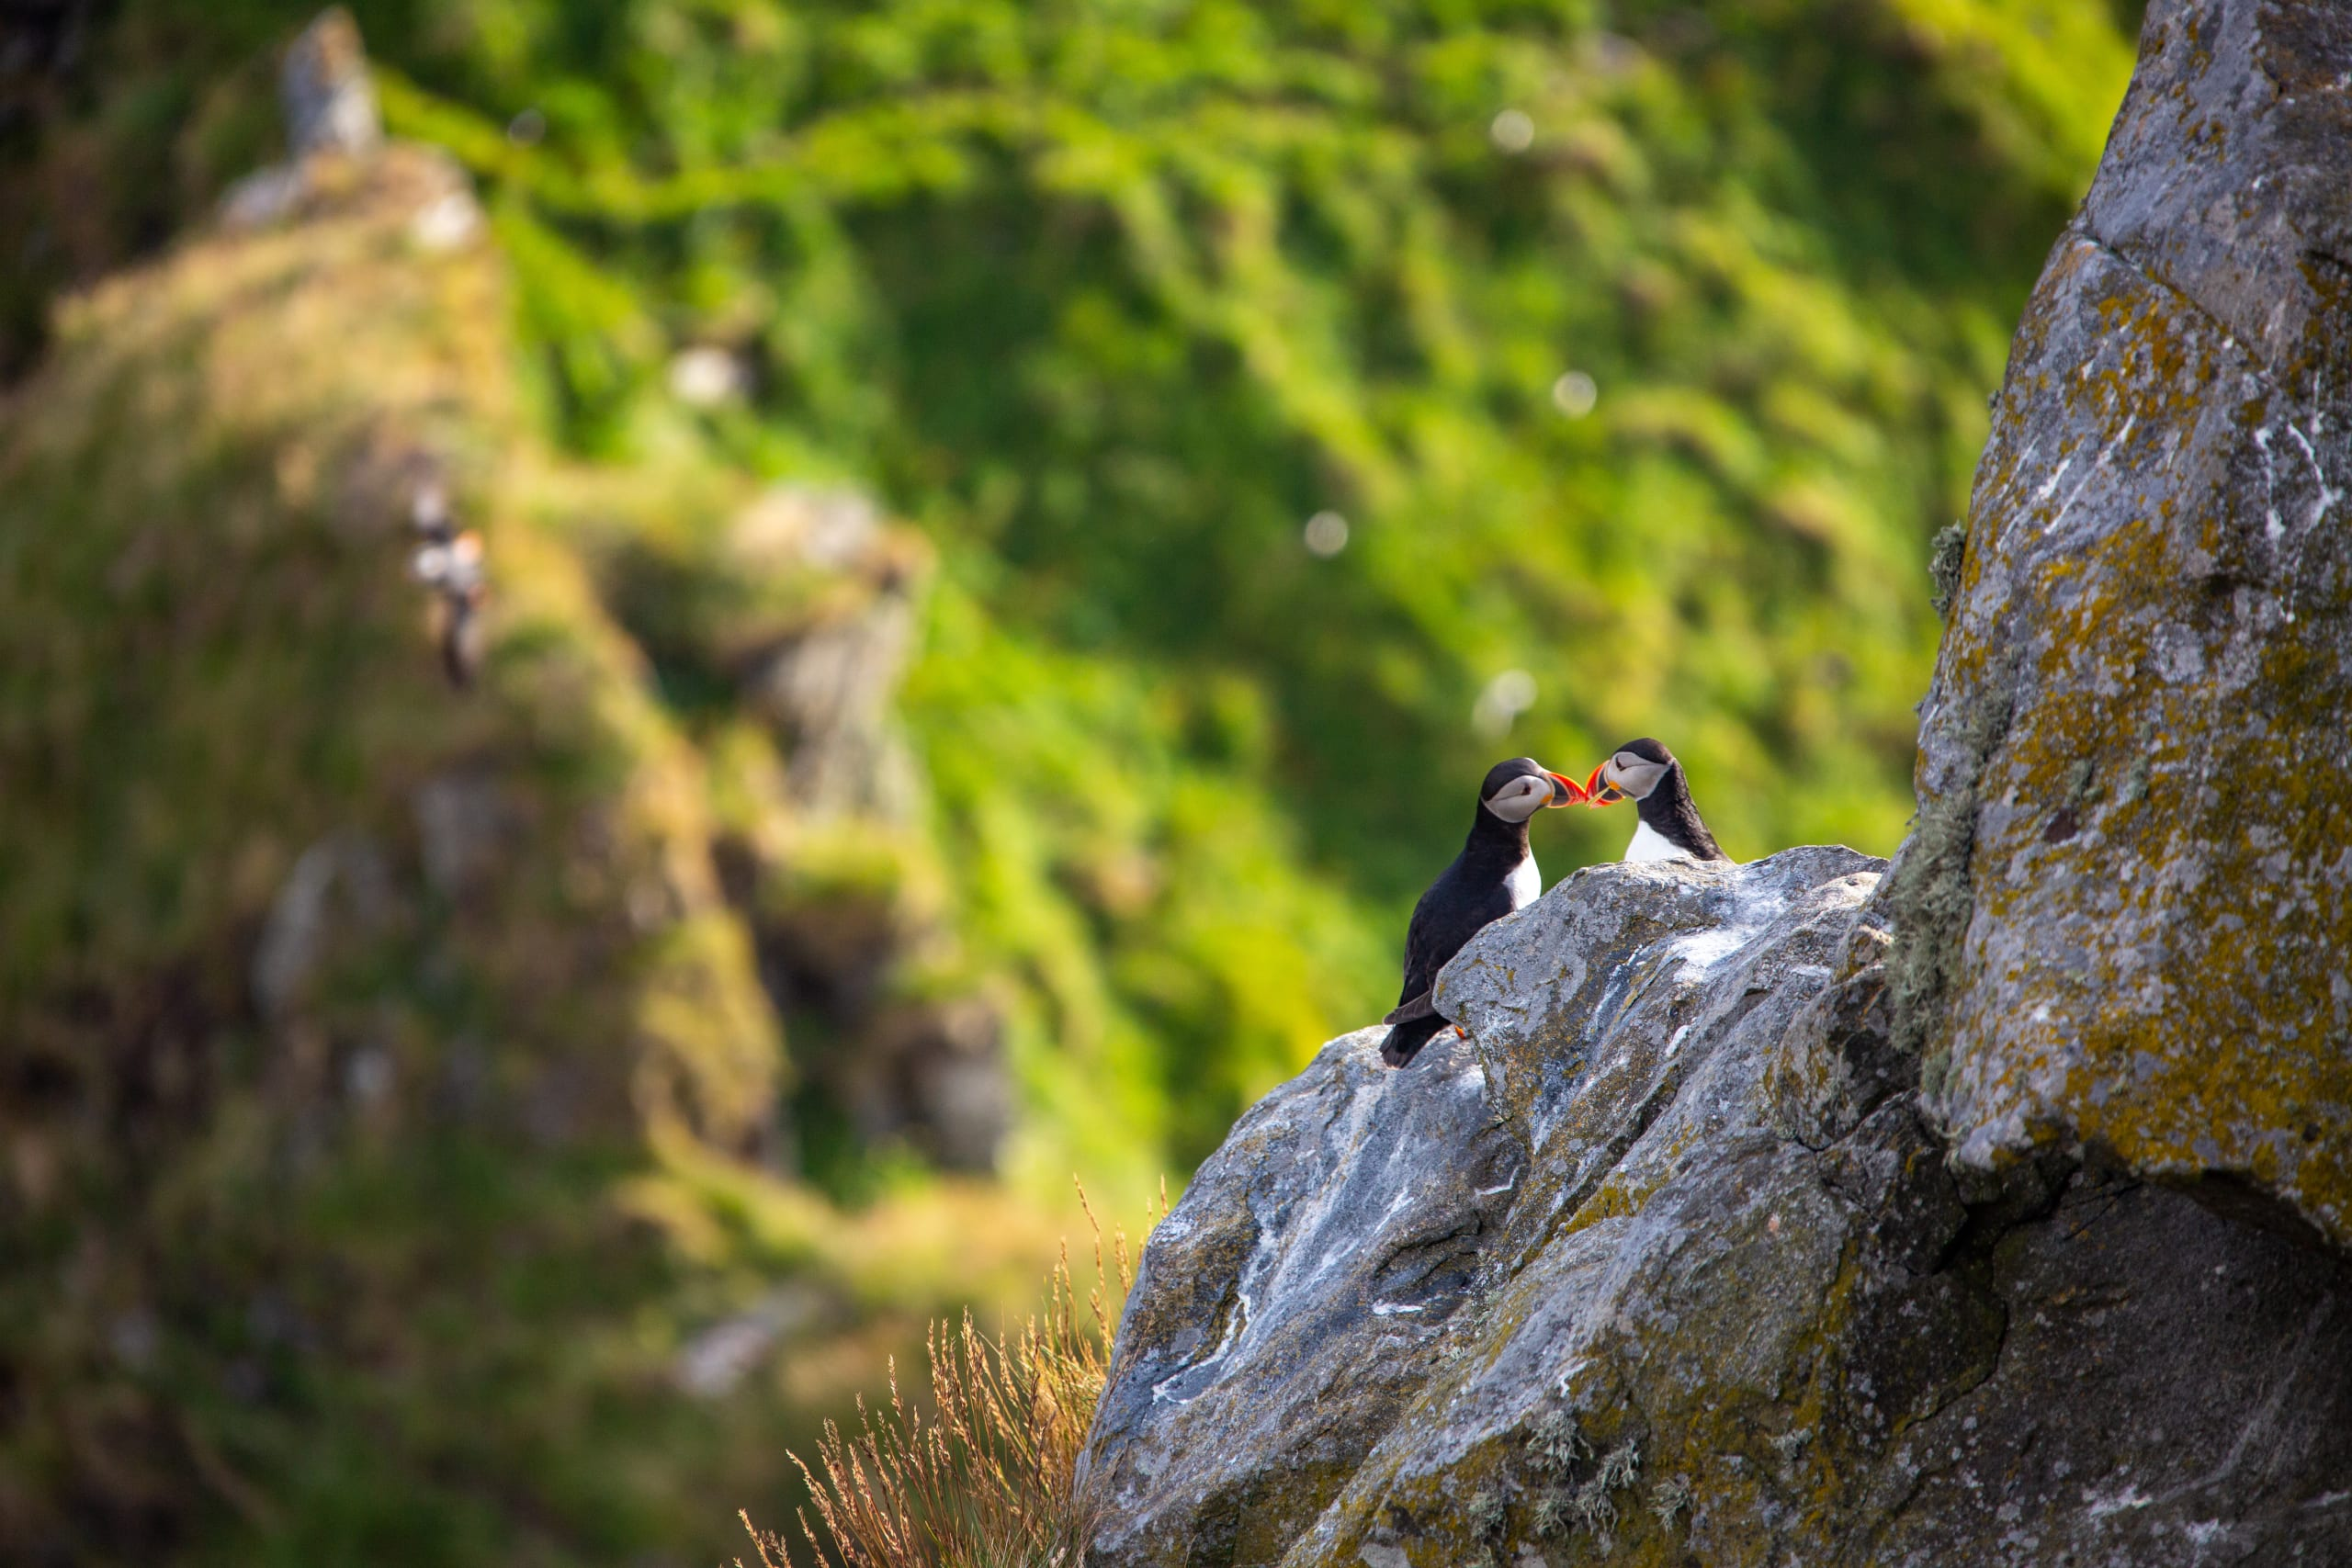 Puffins on the cliffside of Runde Island